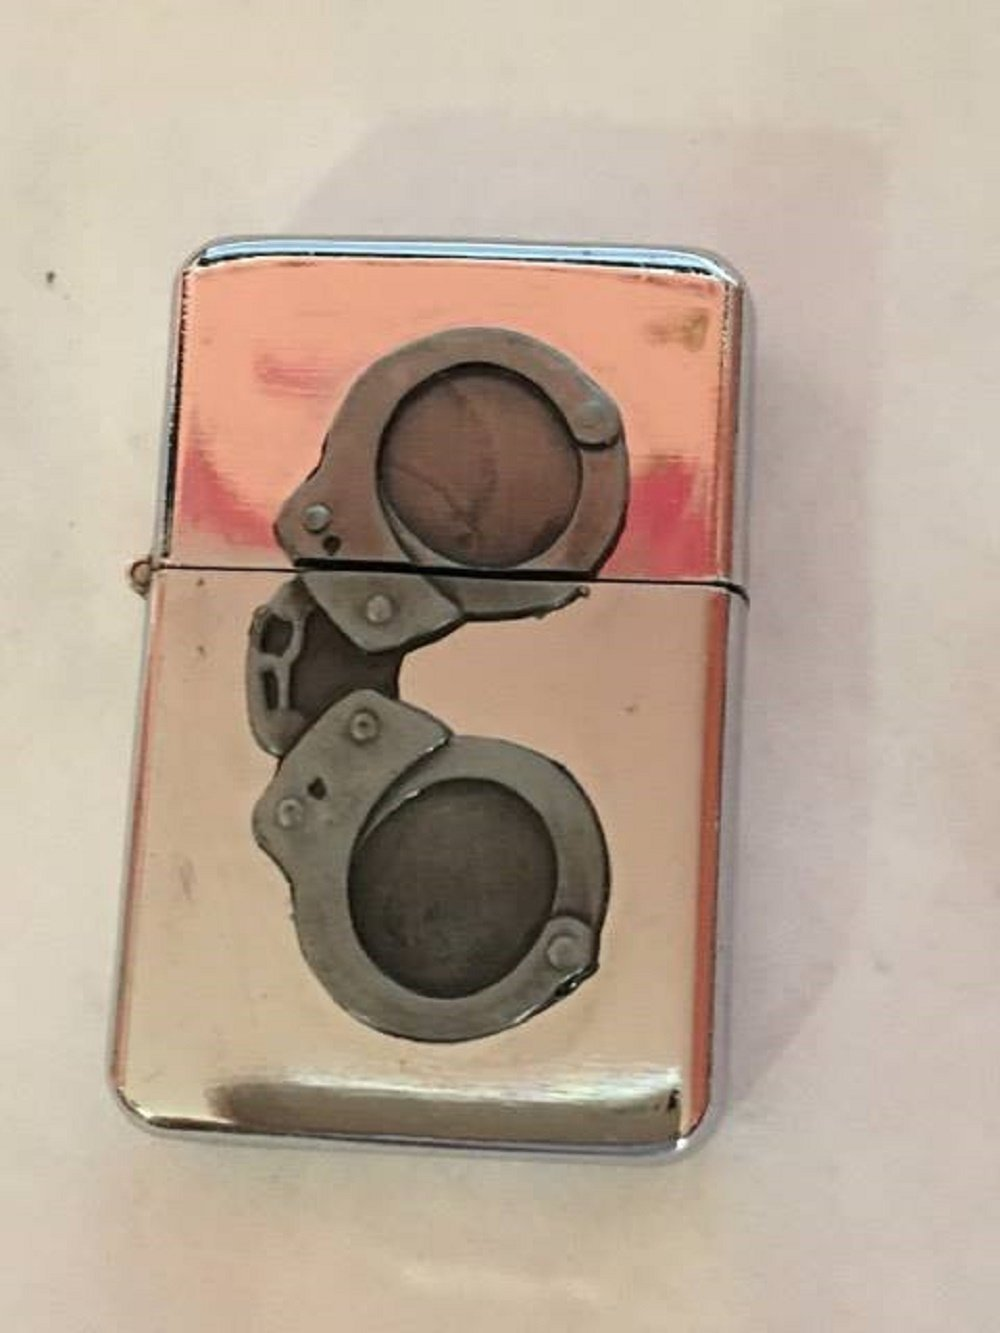 BIKER FLINT LIGHTER - ONE LIGHTER WITH RANDOM COLOR AND DESIGN (style6)